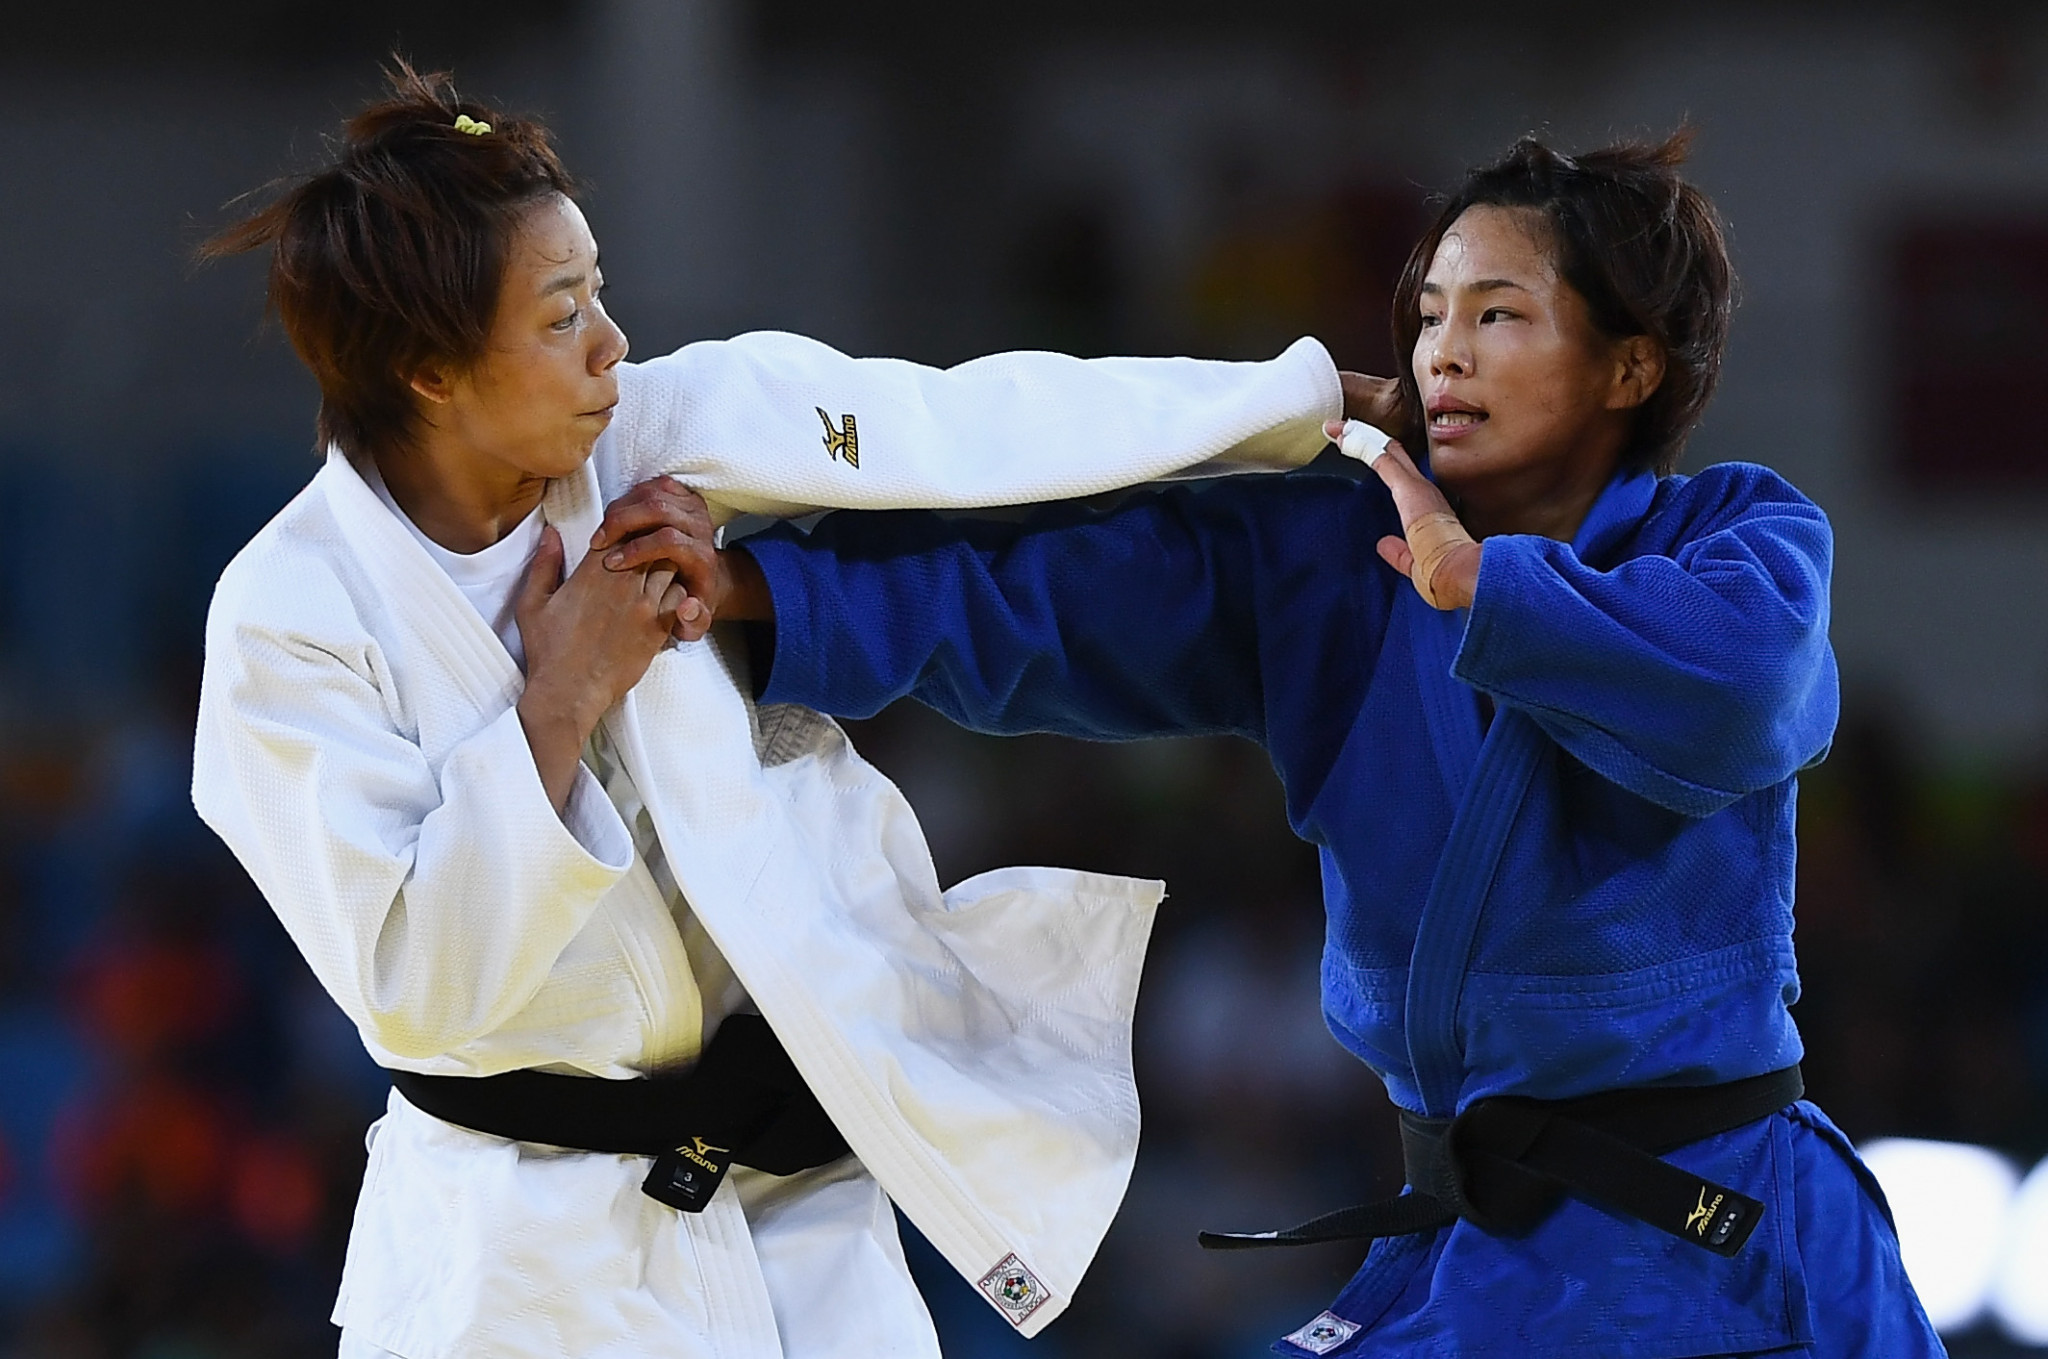 Japan's Kaori Matsumoto, in blue, won an Olympic bronze medal at Rio 2016 alongside her London 2012 gold ©Getty Images